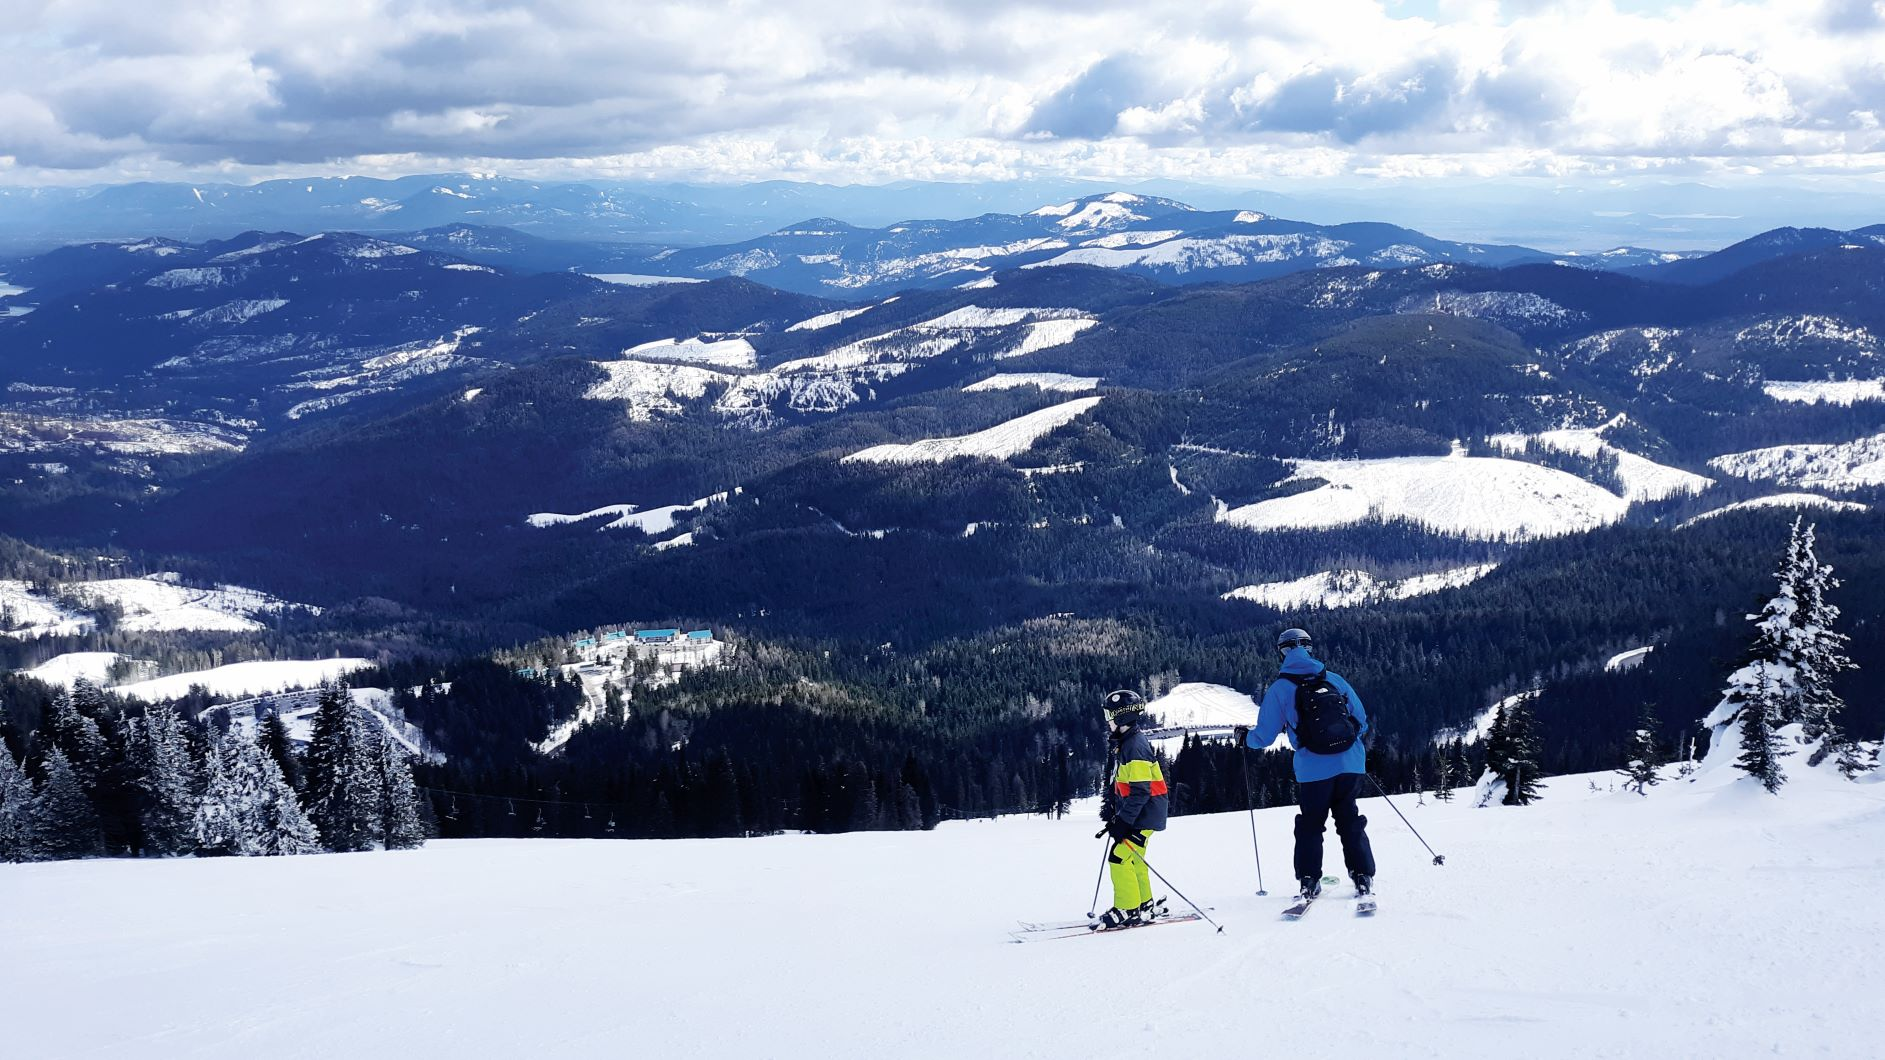 Family skiing down Mount spokane.